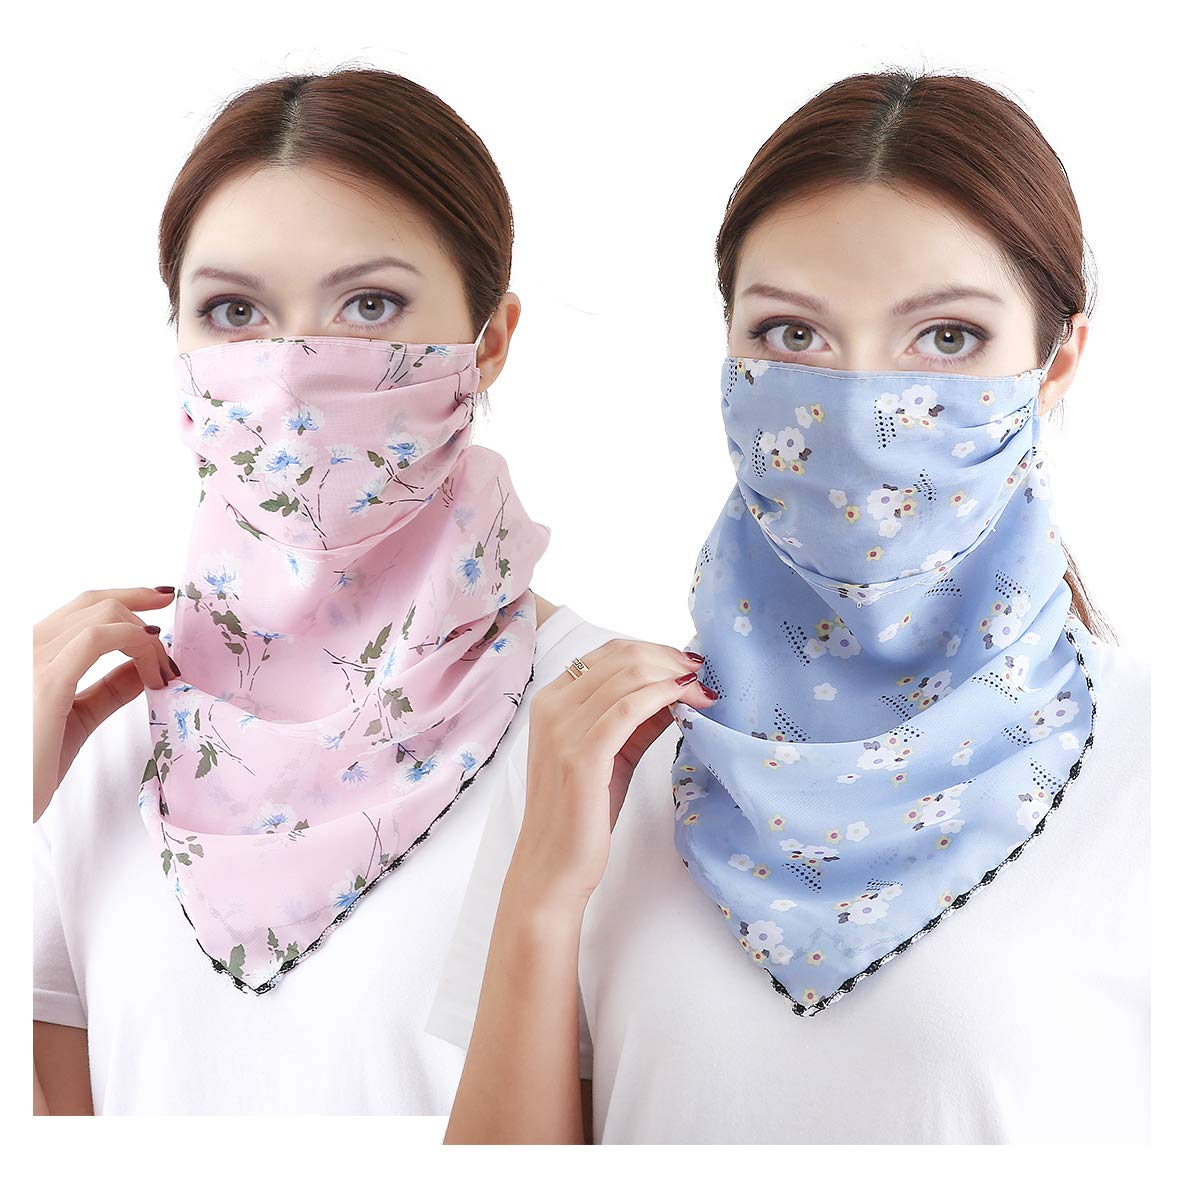 2 or 4 6 Pack Women Sun Mask Face Scarf Chiffon Wrap Dust Shield Neck Gaiter UV Protection